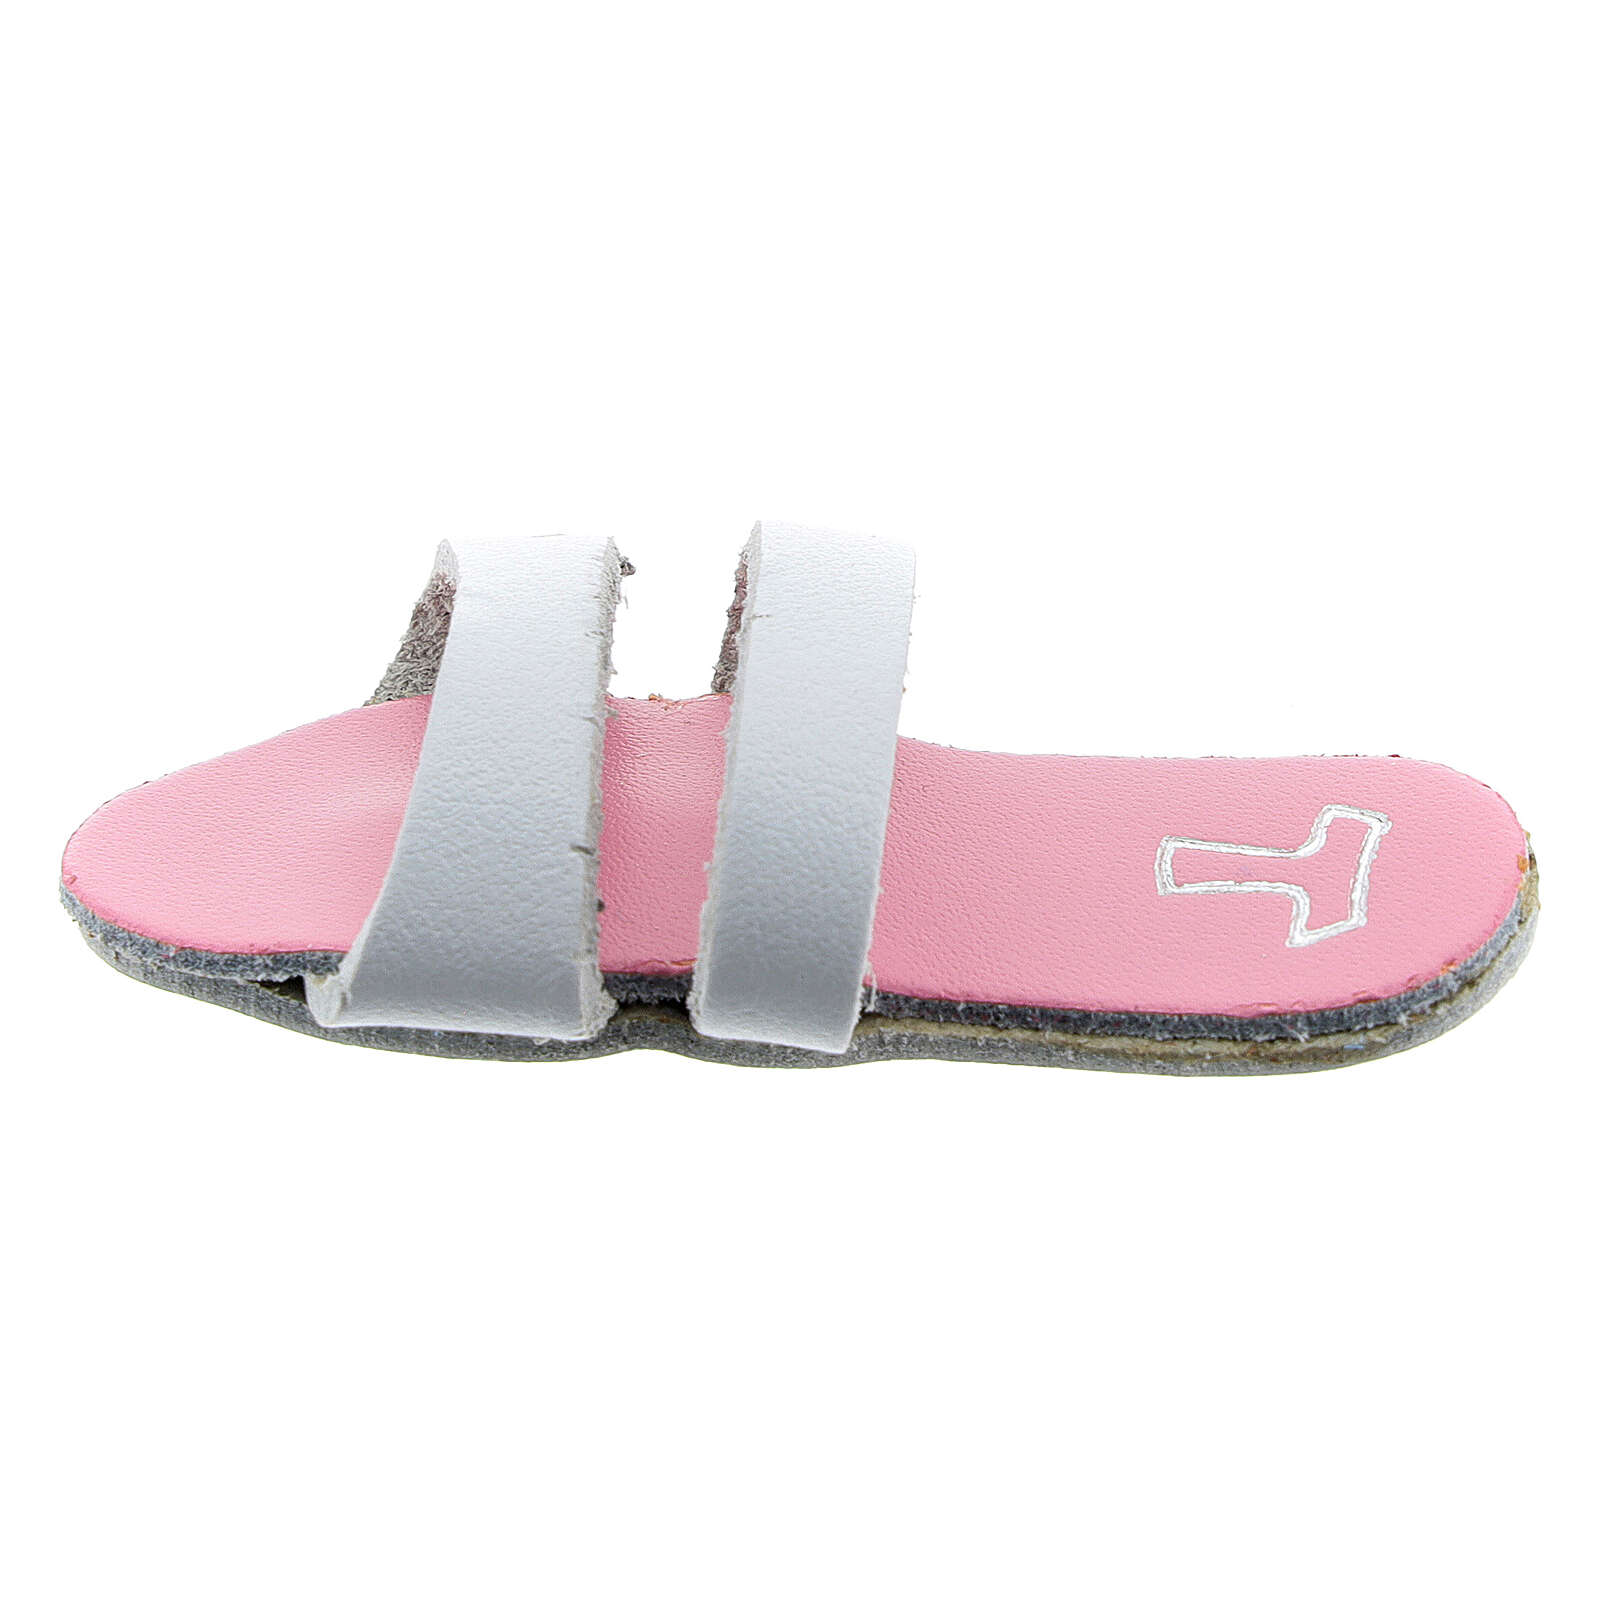 Franciscan sandal magnet pink sole Tau 2 1/2 in real leather 3